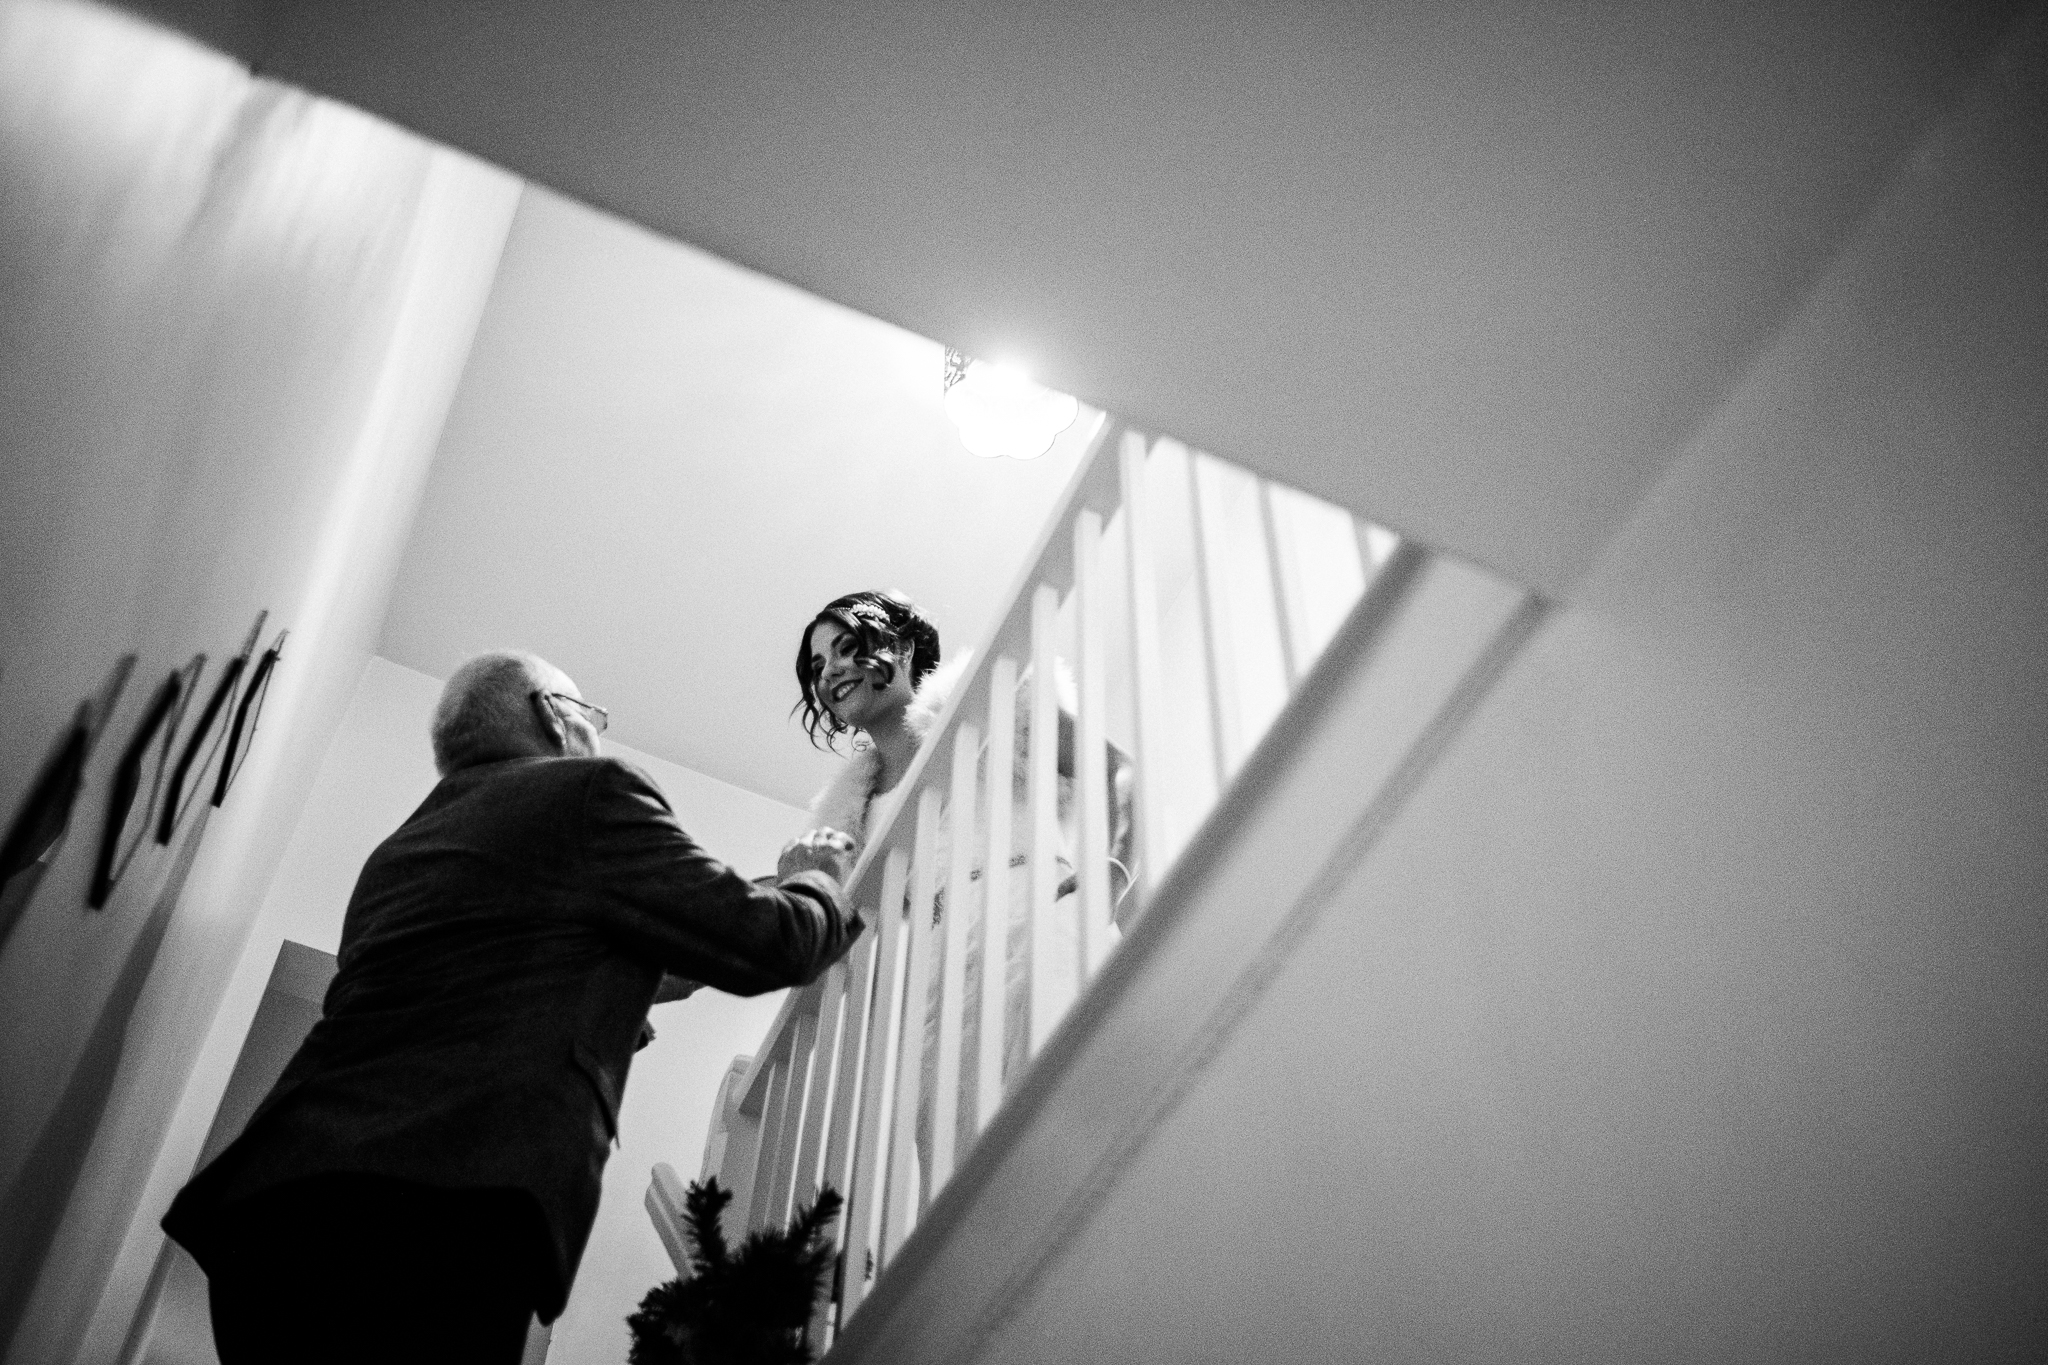 Staffordshire Winter Christmas Wedding at Holy Trinity Church and Keele Hall - Documentary Photography by Jenny Harper-15.jpg